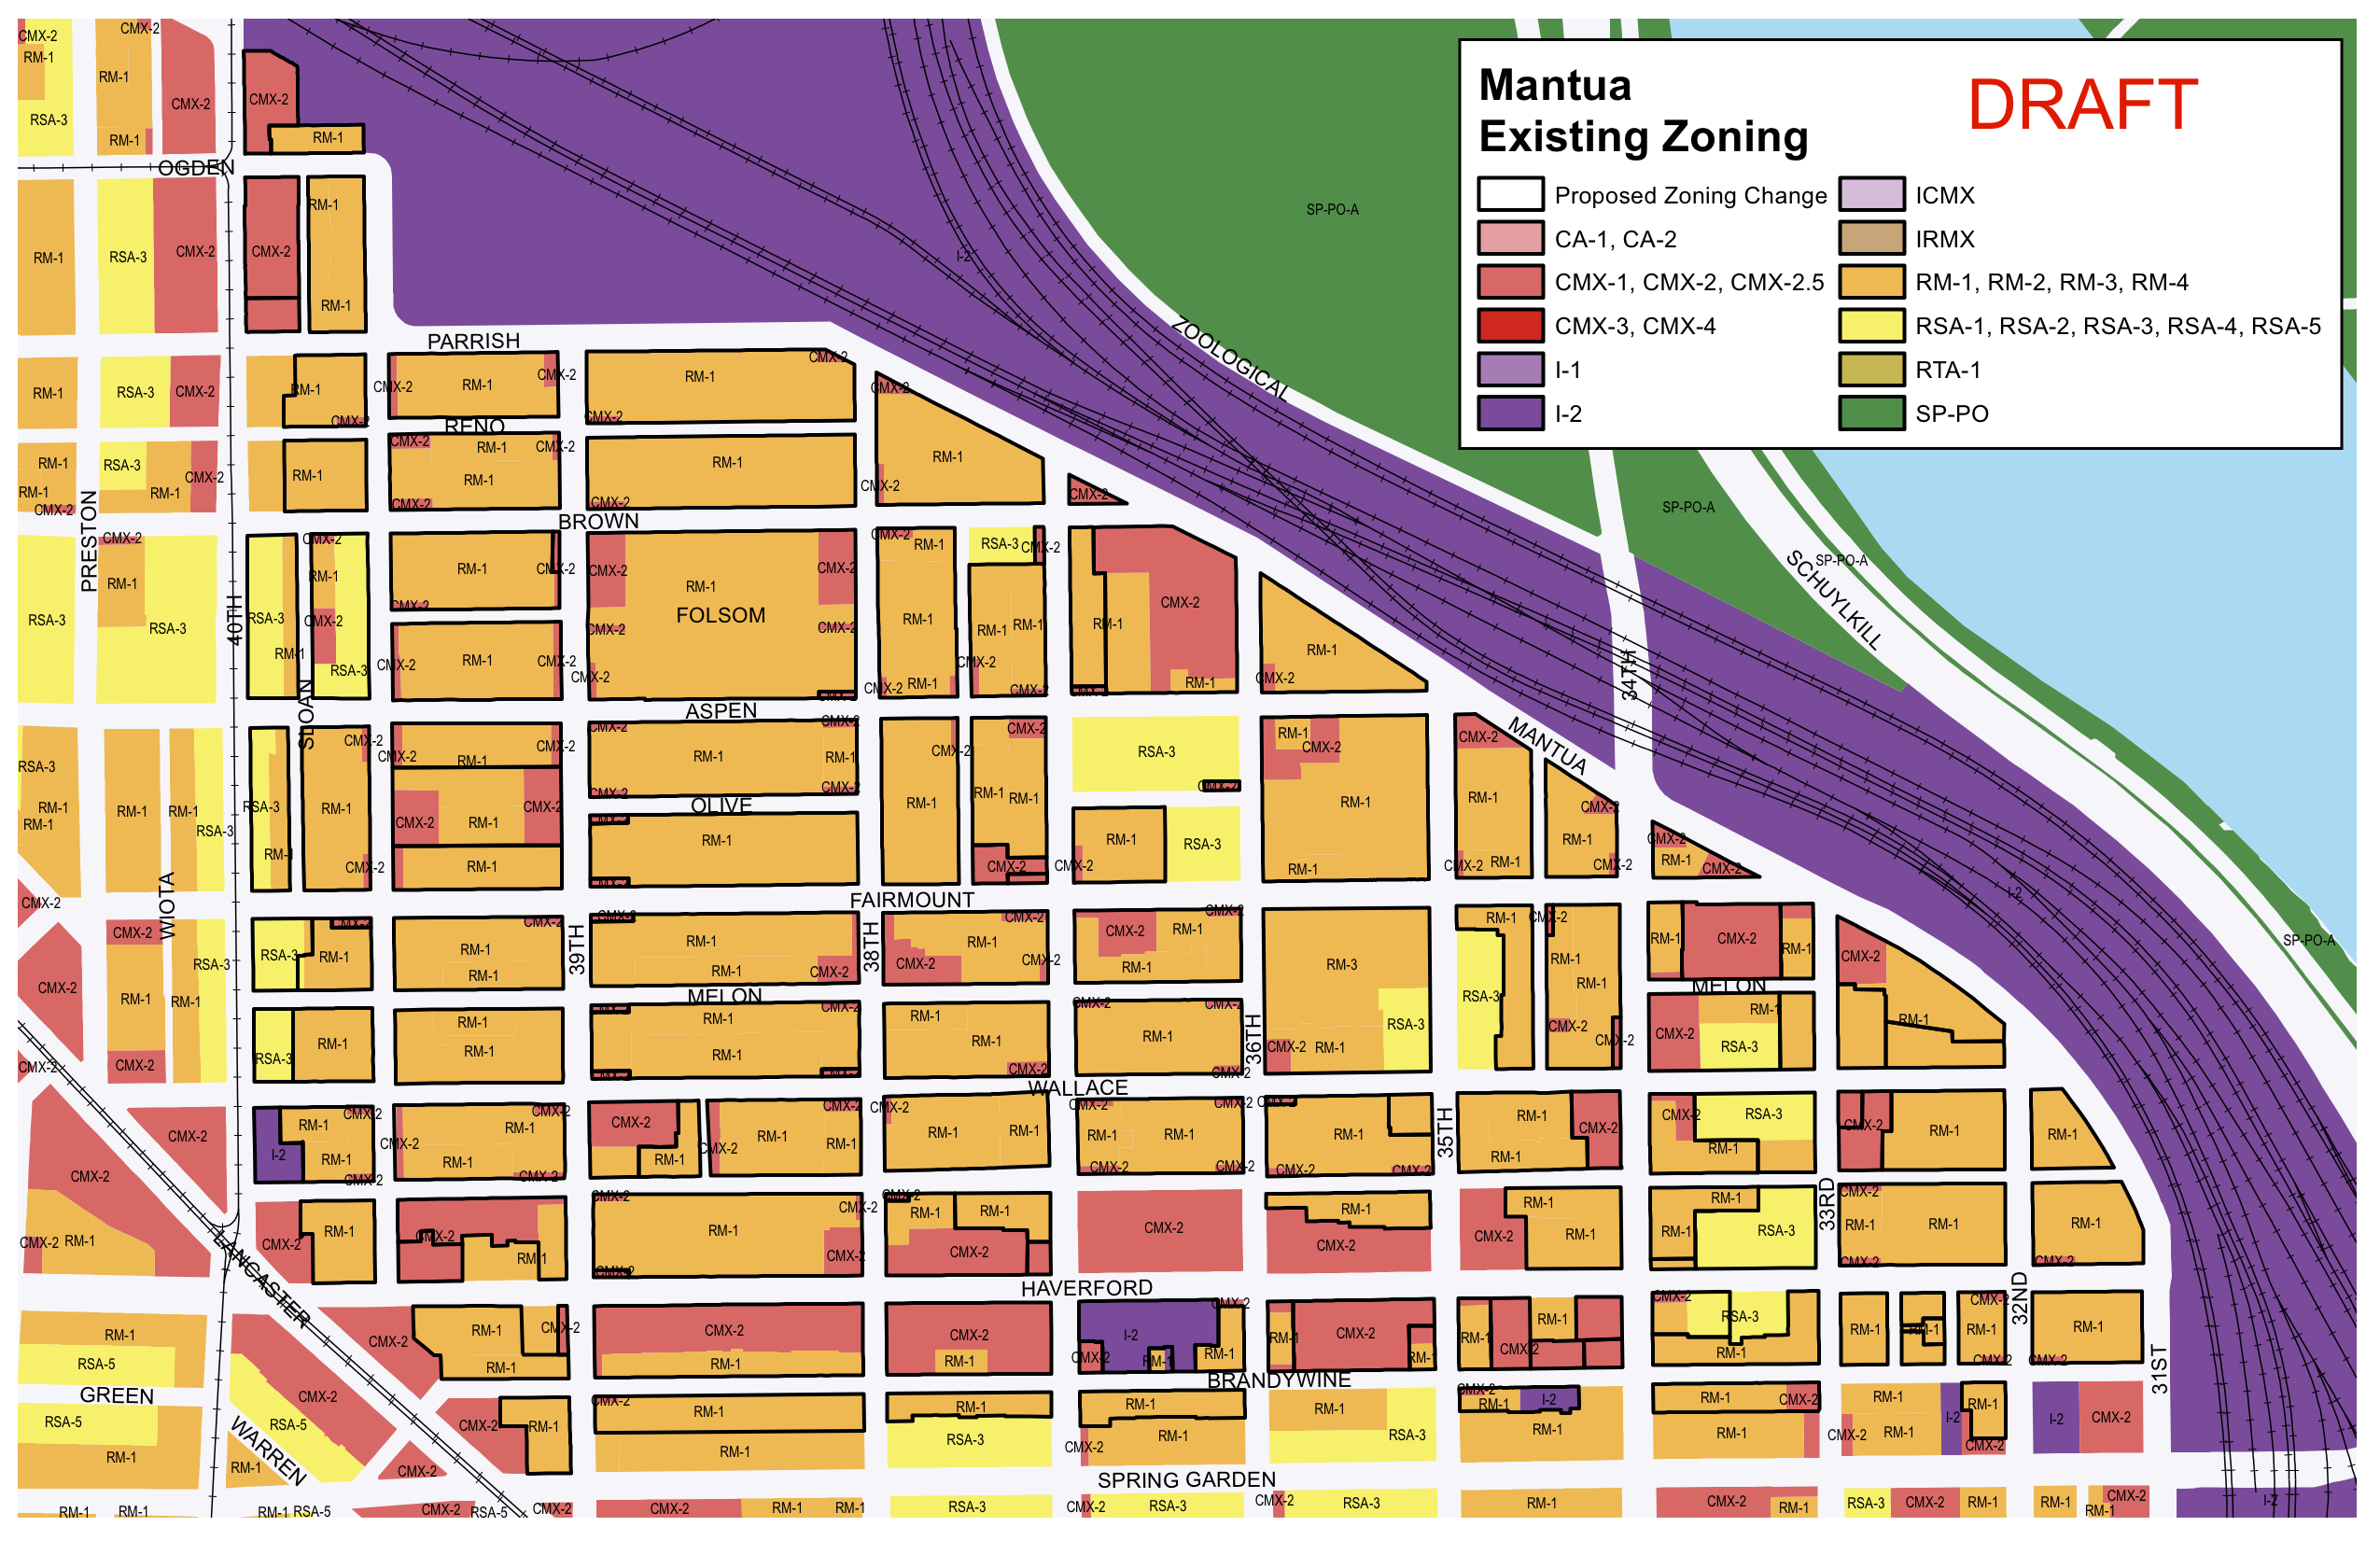 Mantua Existing Zoning, June 2016